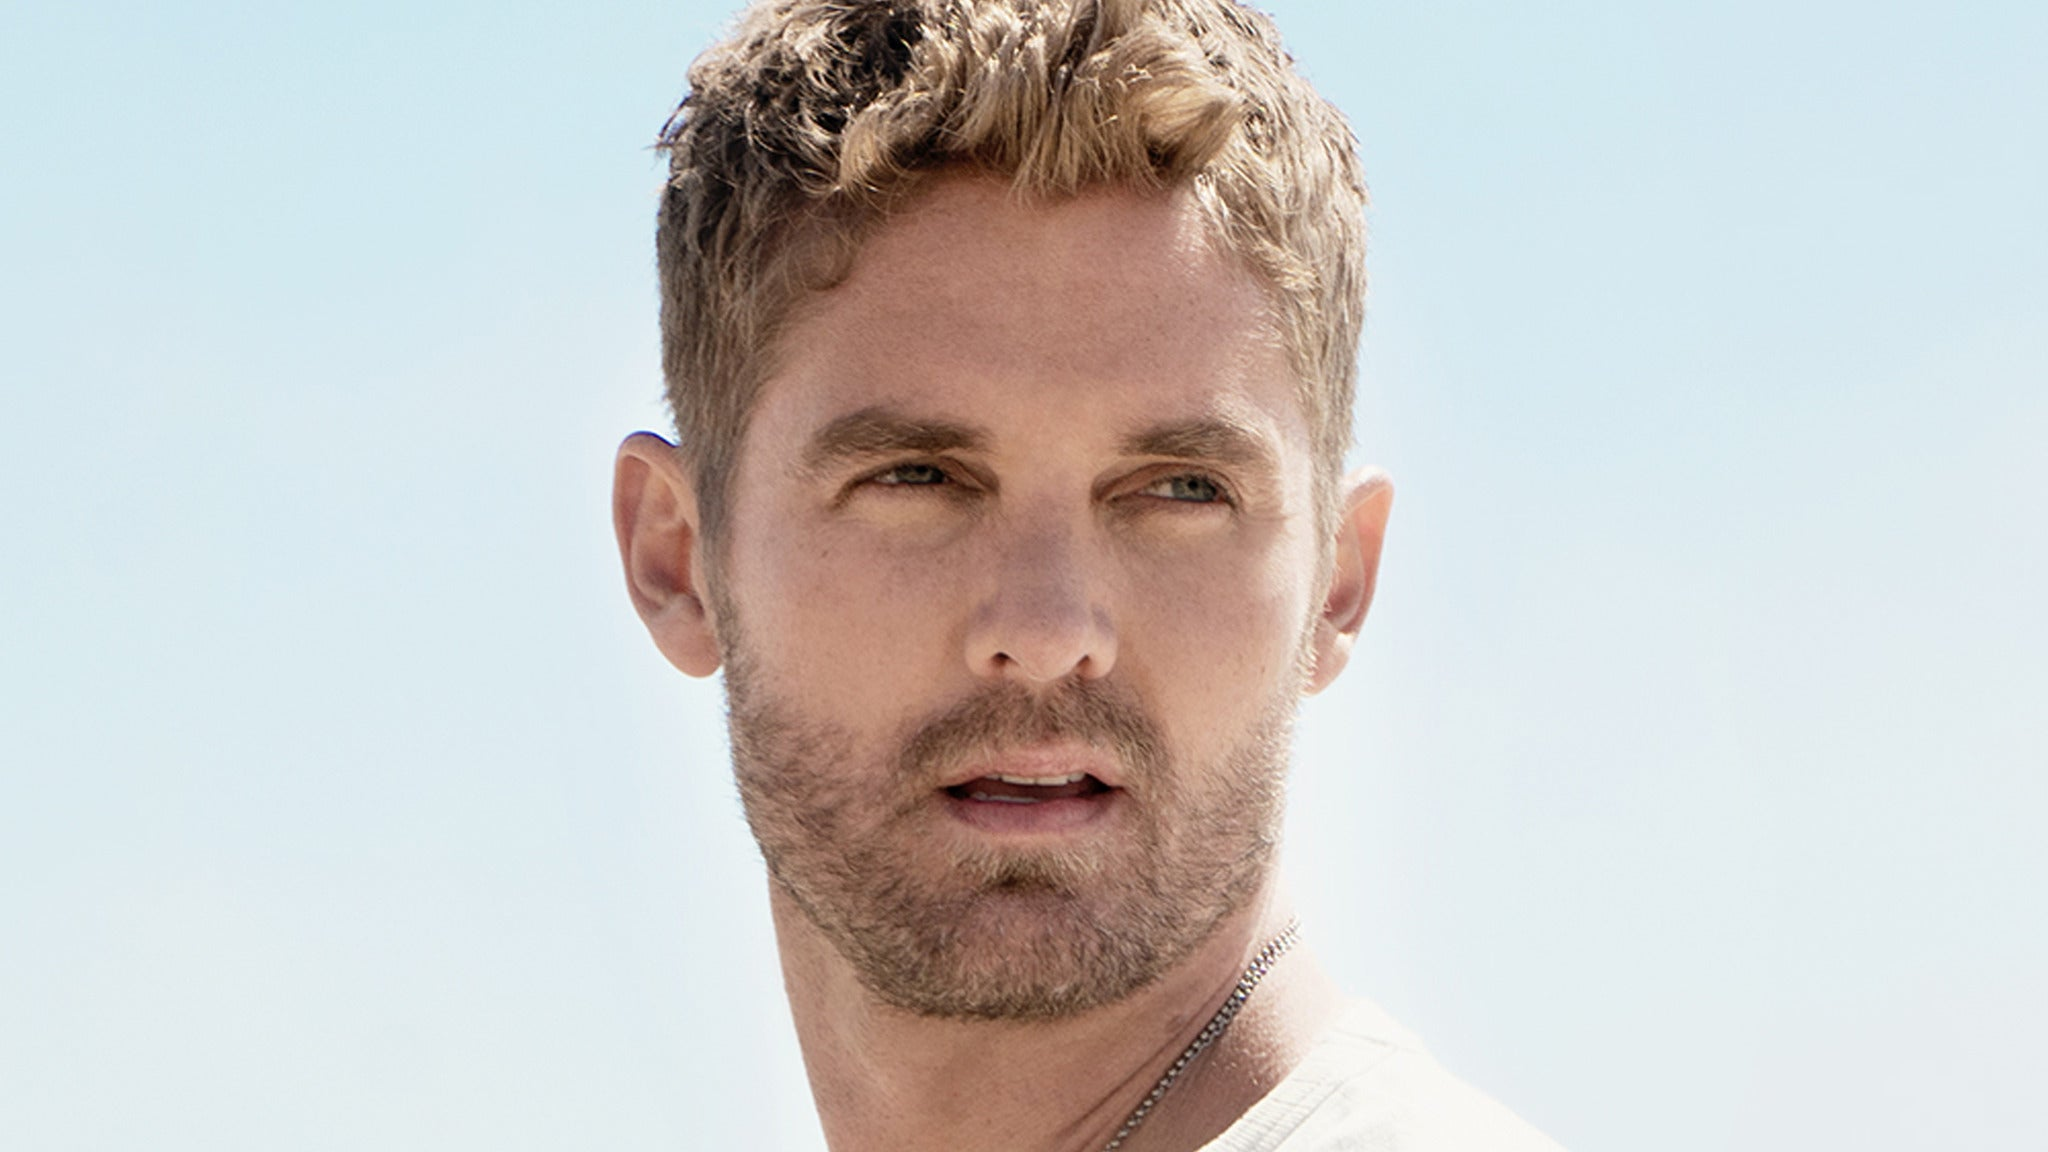 Brett Young at TREASURE ISLAND RESORT & CASINO - WELCH, MN 55089